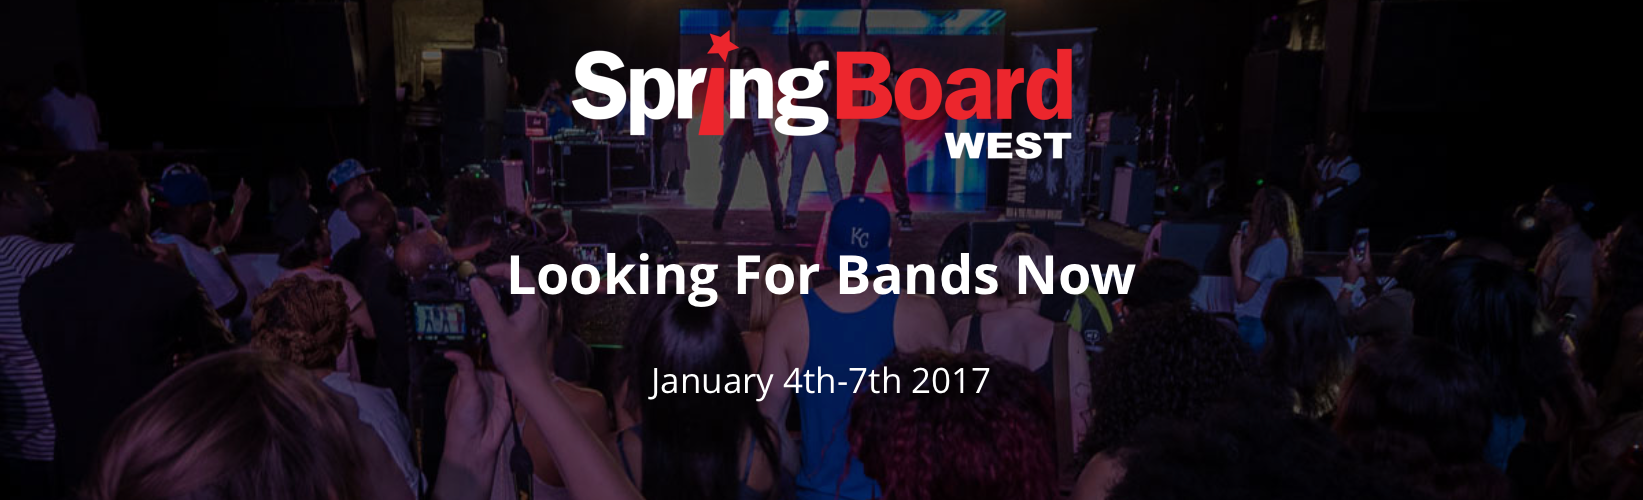 https://www.imoveilive.com/wp-content/uploads/2016/11/Springboard-west.png